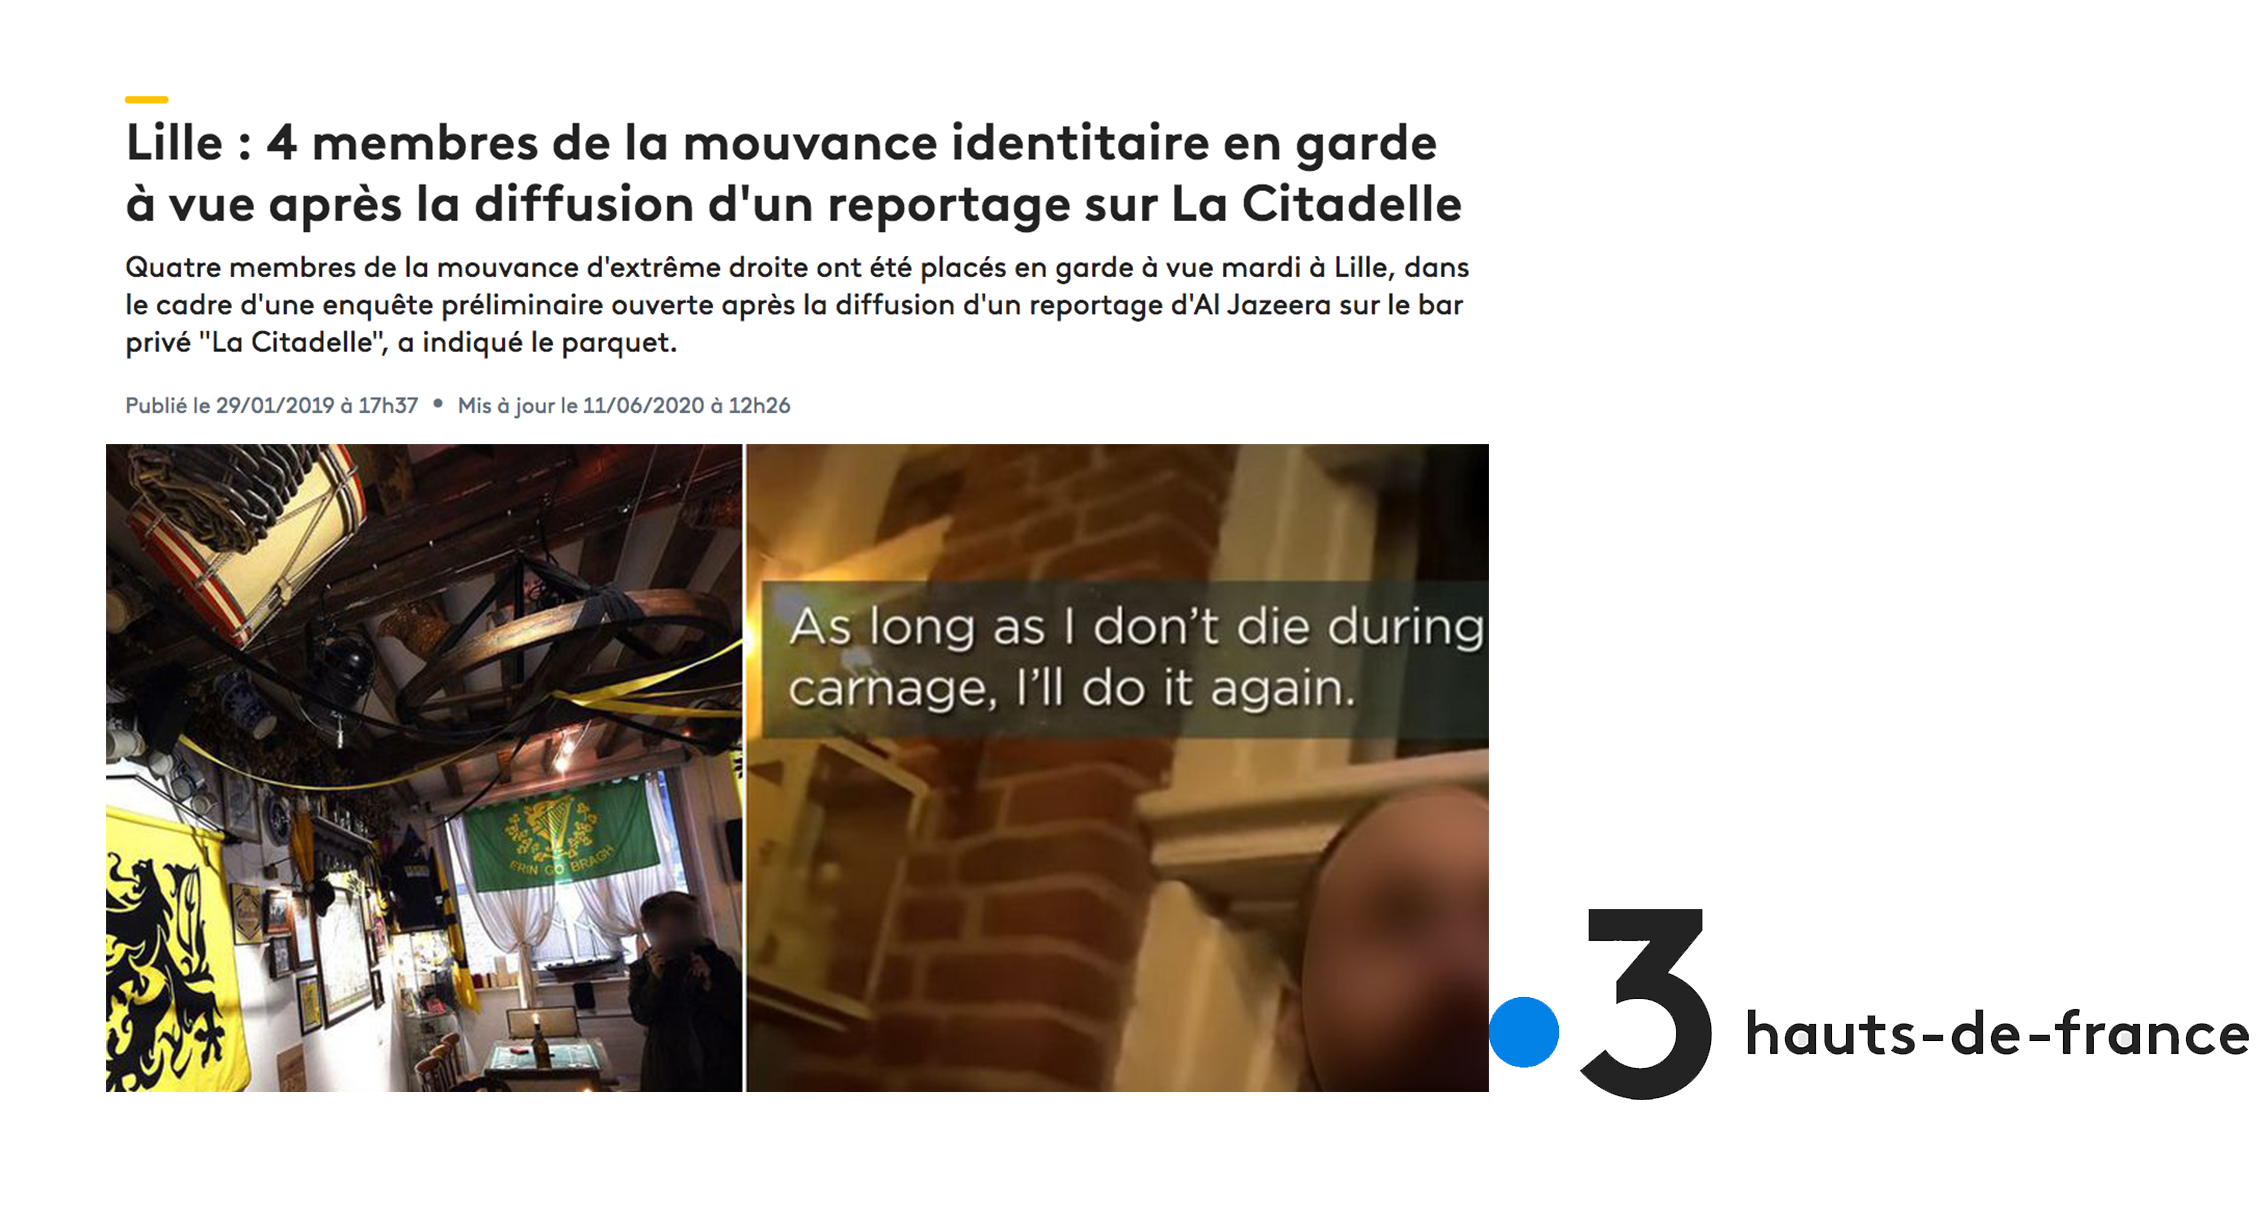 France3: Four members of GI arrested